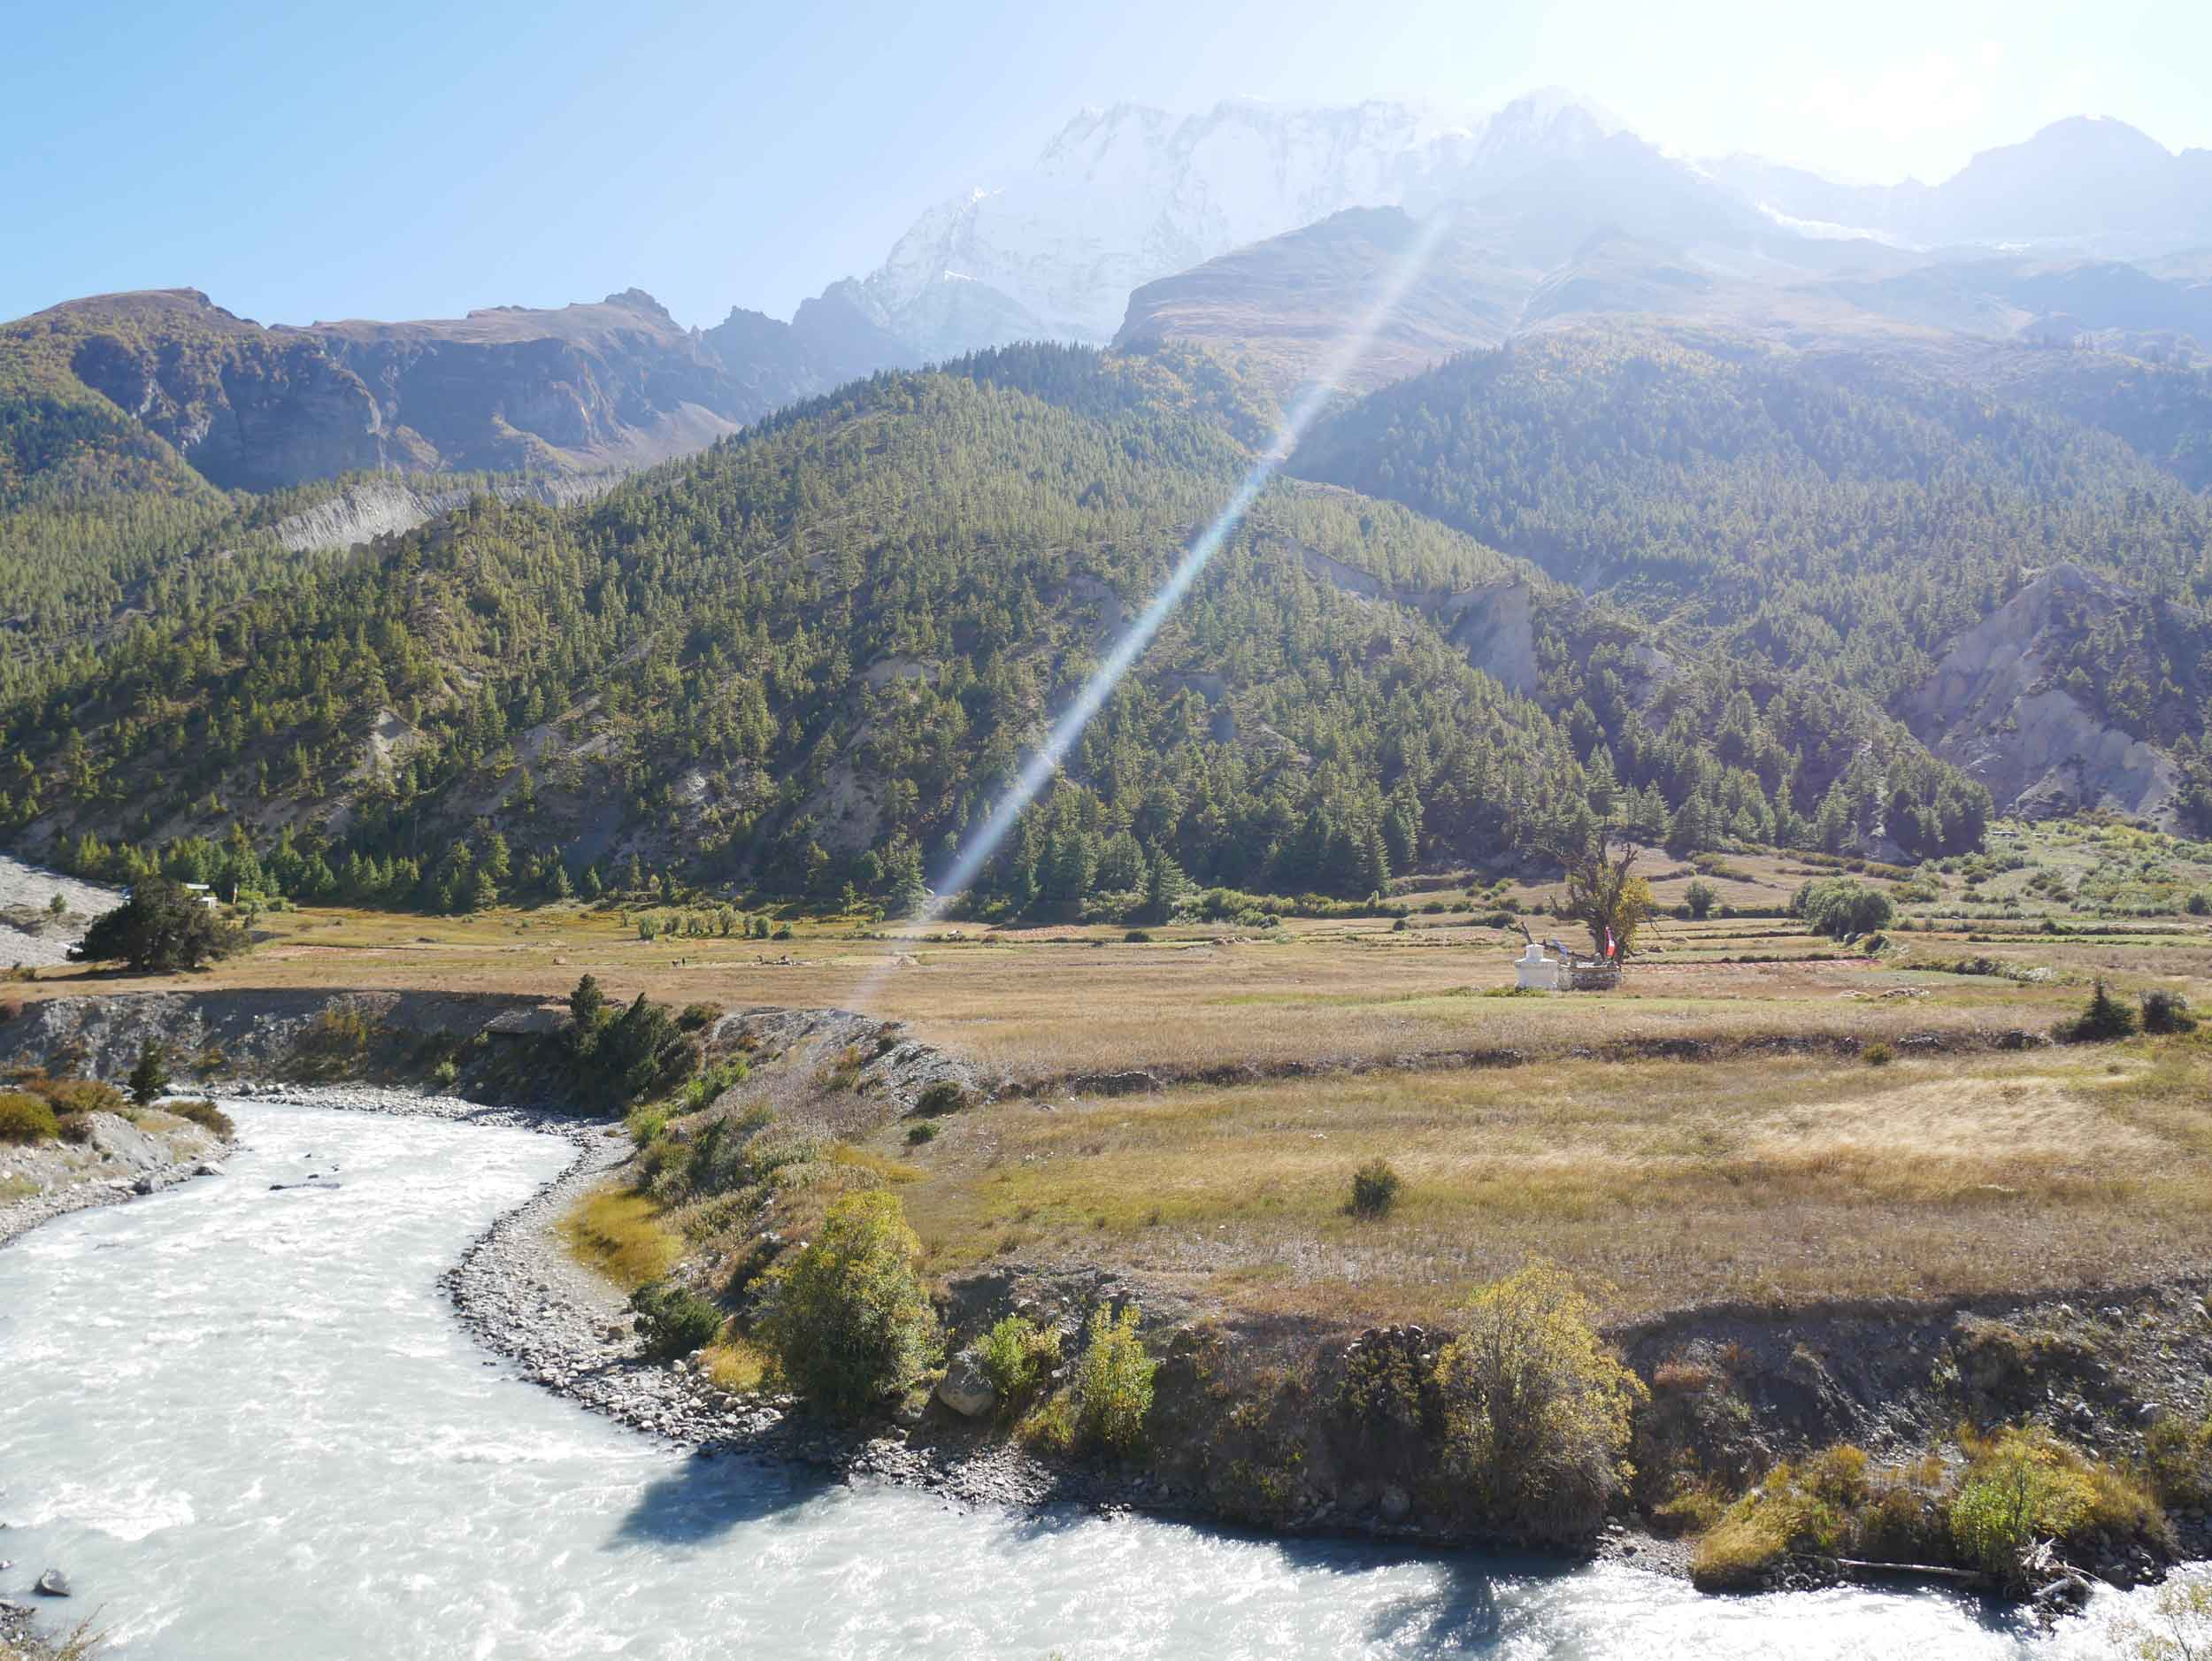 Our hike into the regional capital of Manang during 'golden hour' brought us spectacular views of the valley.